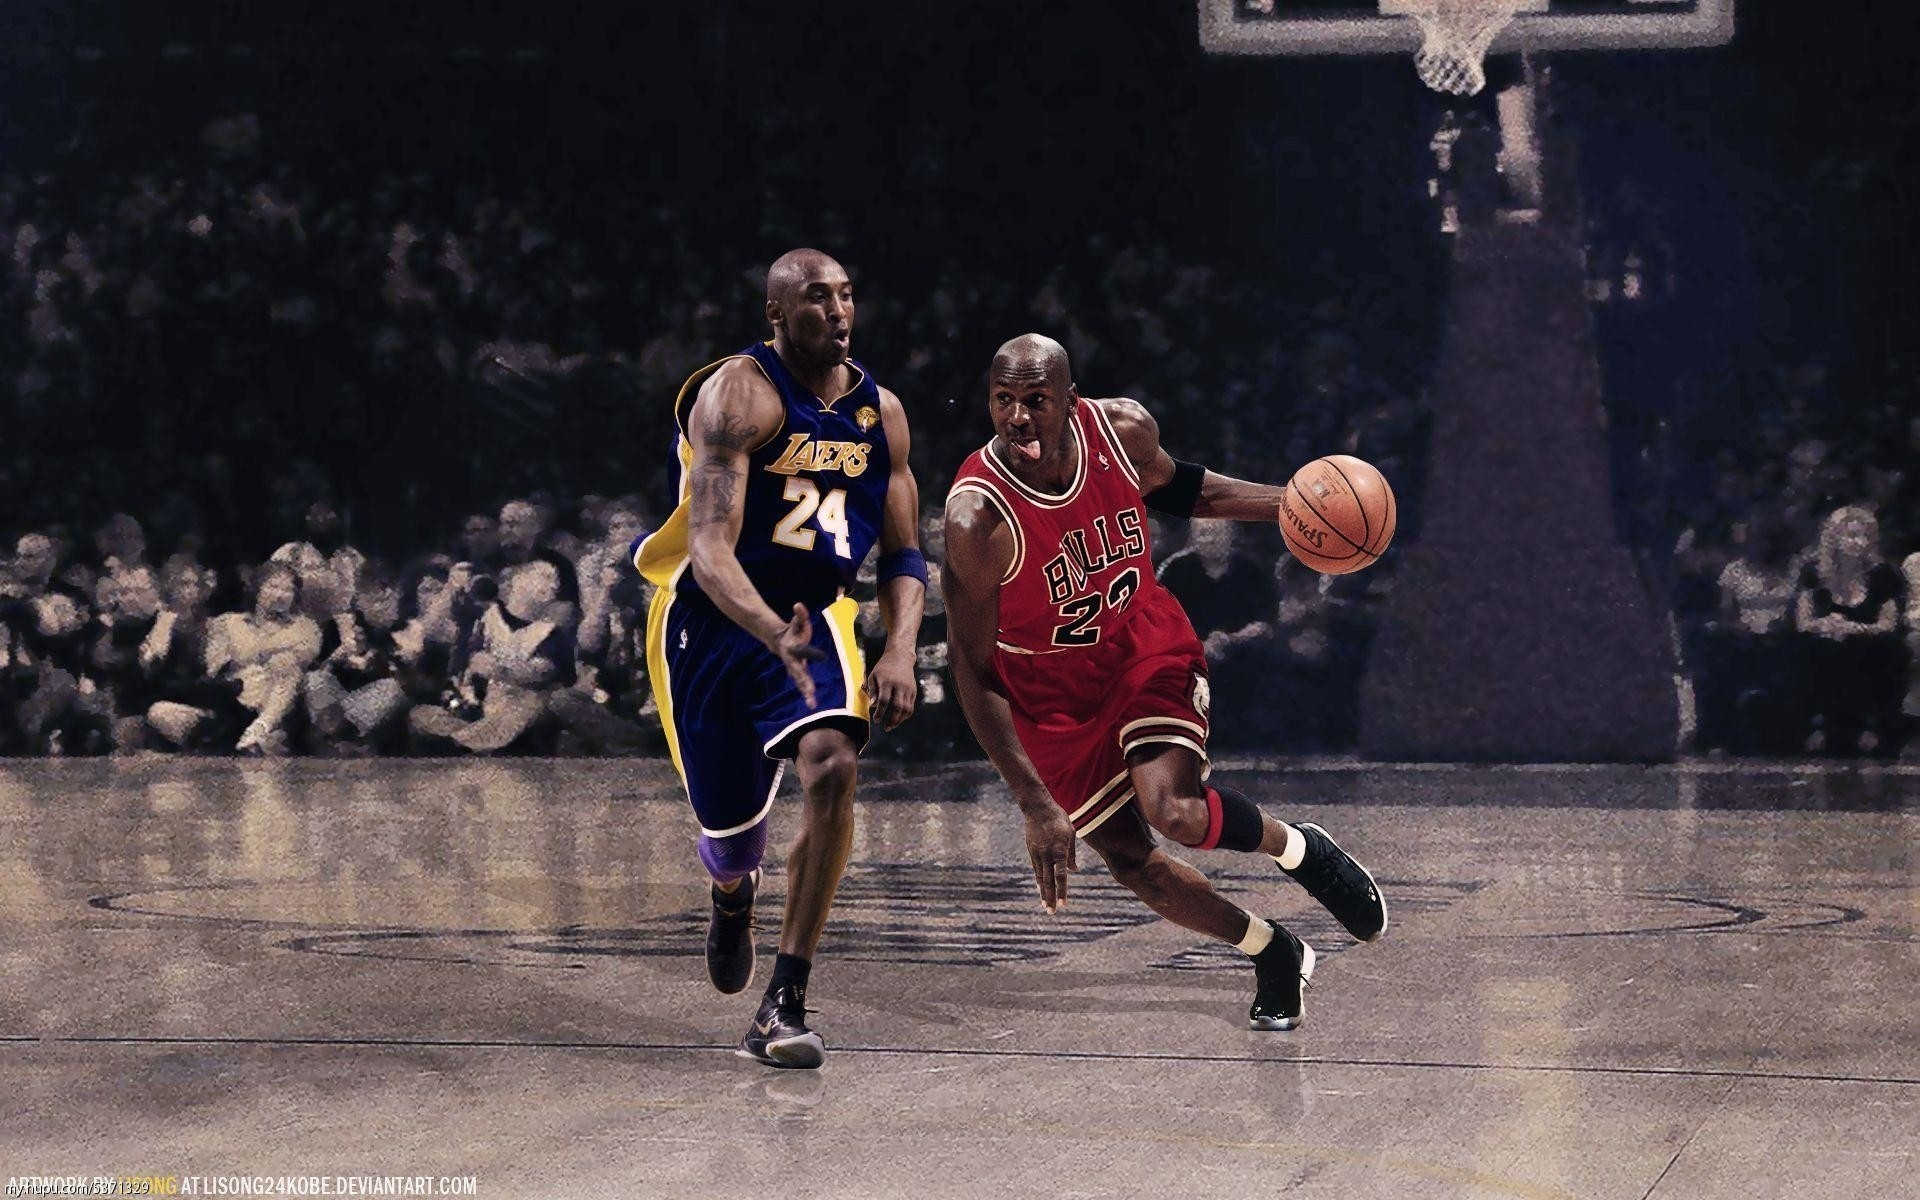 kobe vs jordan wallpaper hd ·①